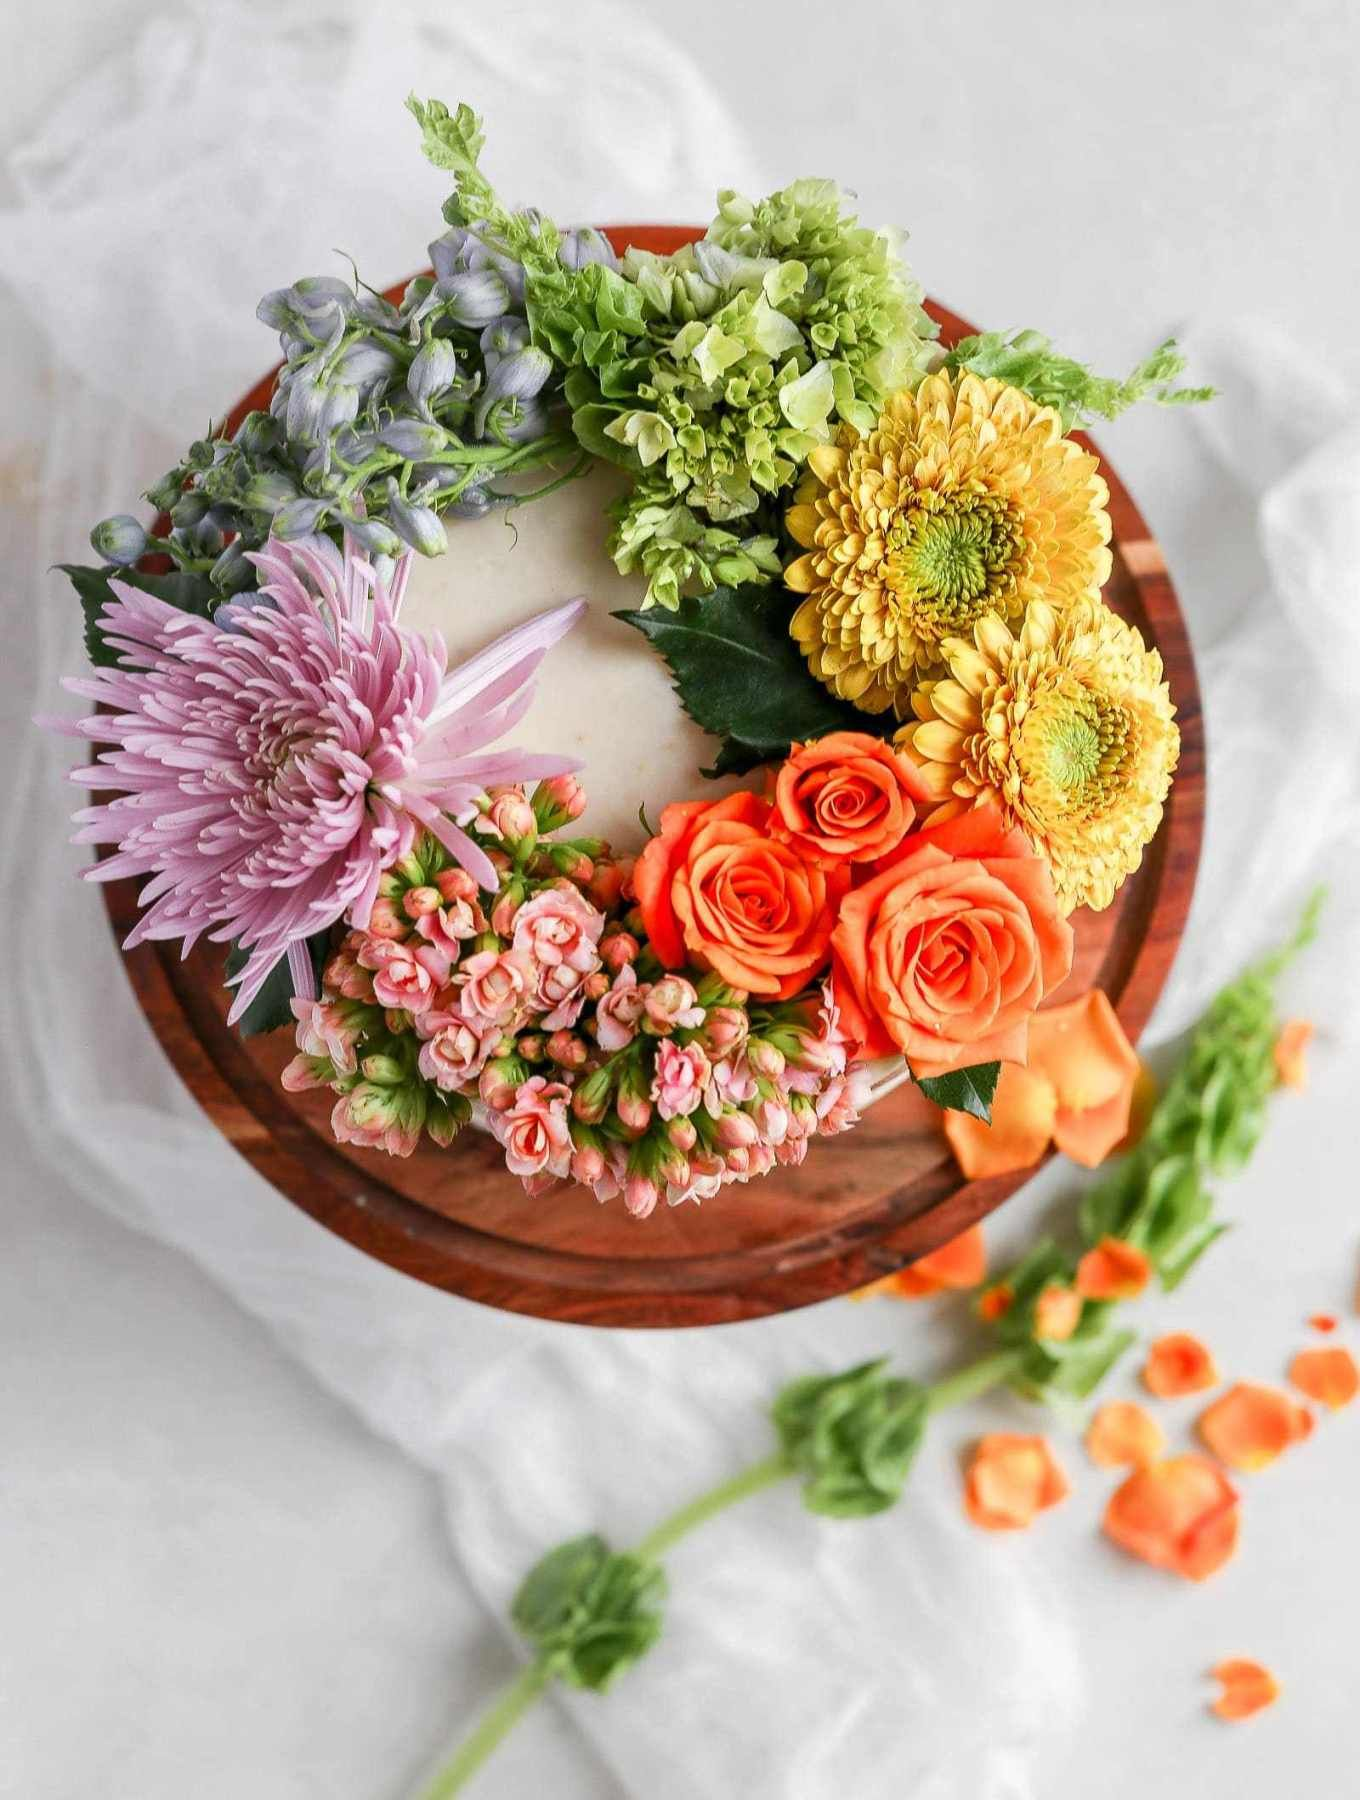 How to Decorate a Cake with NonEdible Flowers Fresh